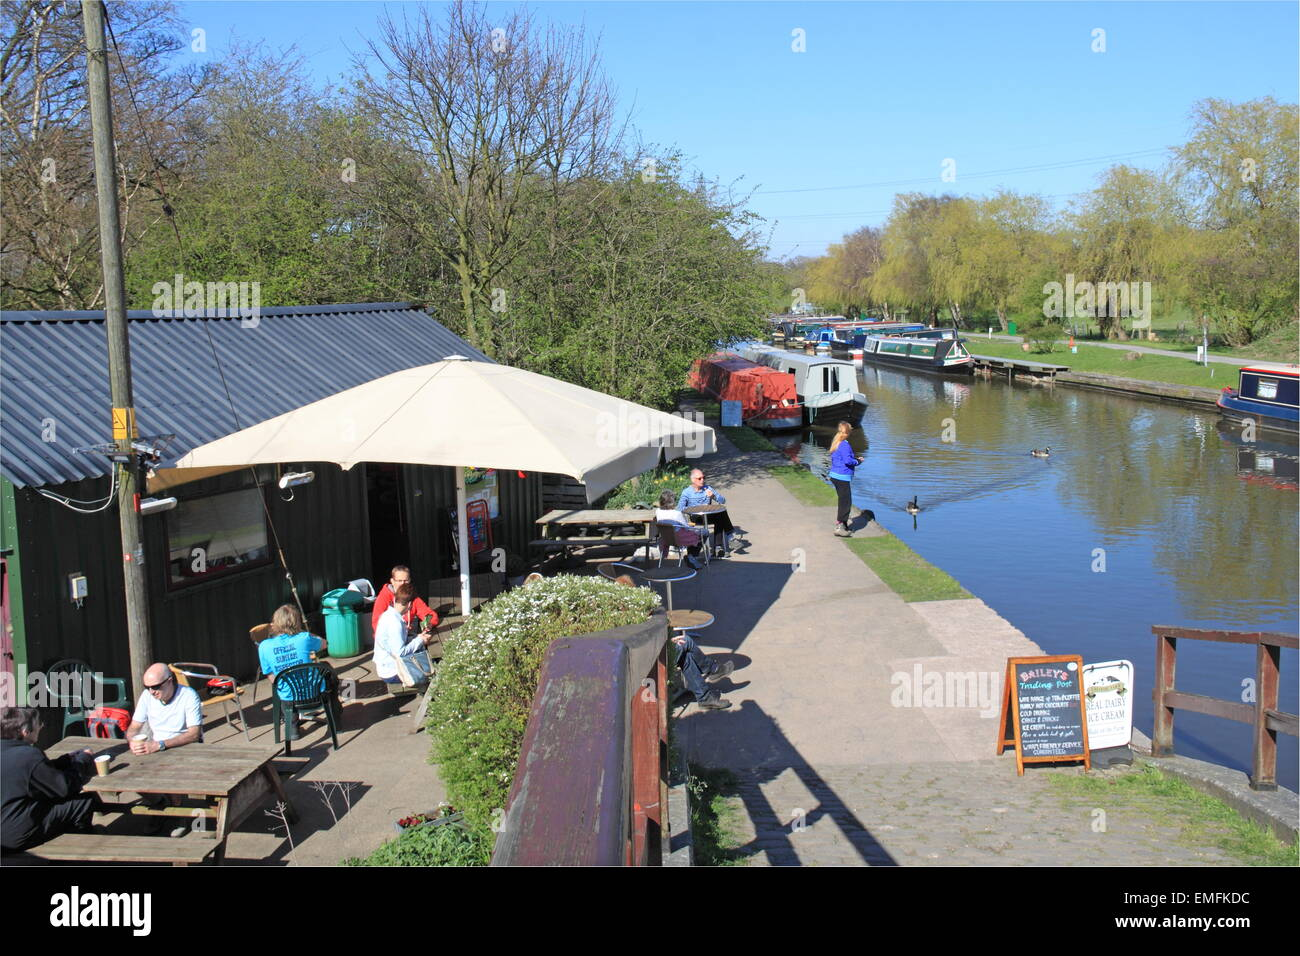 Bailey's Trading Post, Macclesfield Canal, Higher Poynton, Stockport, Cheshire, England, Great Britain, United - Stock Image